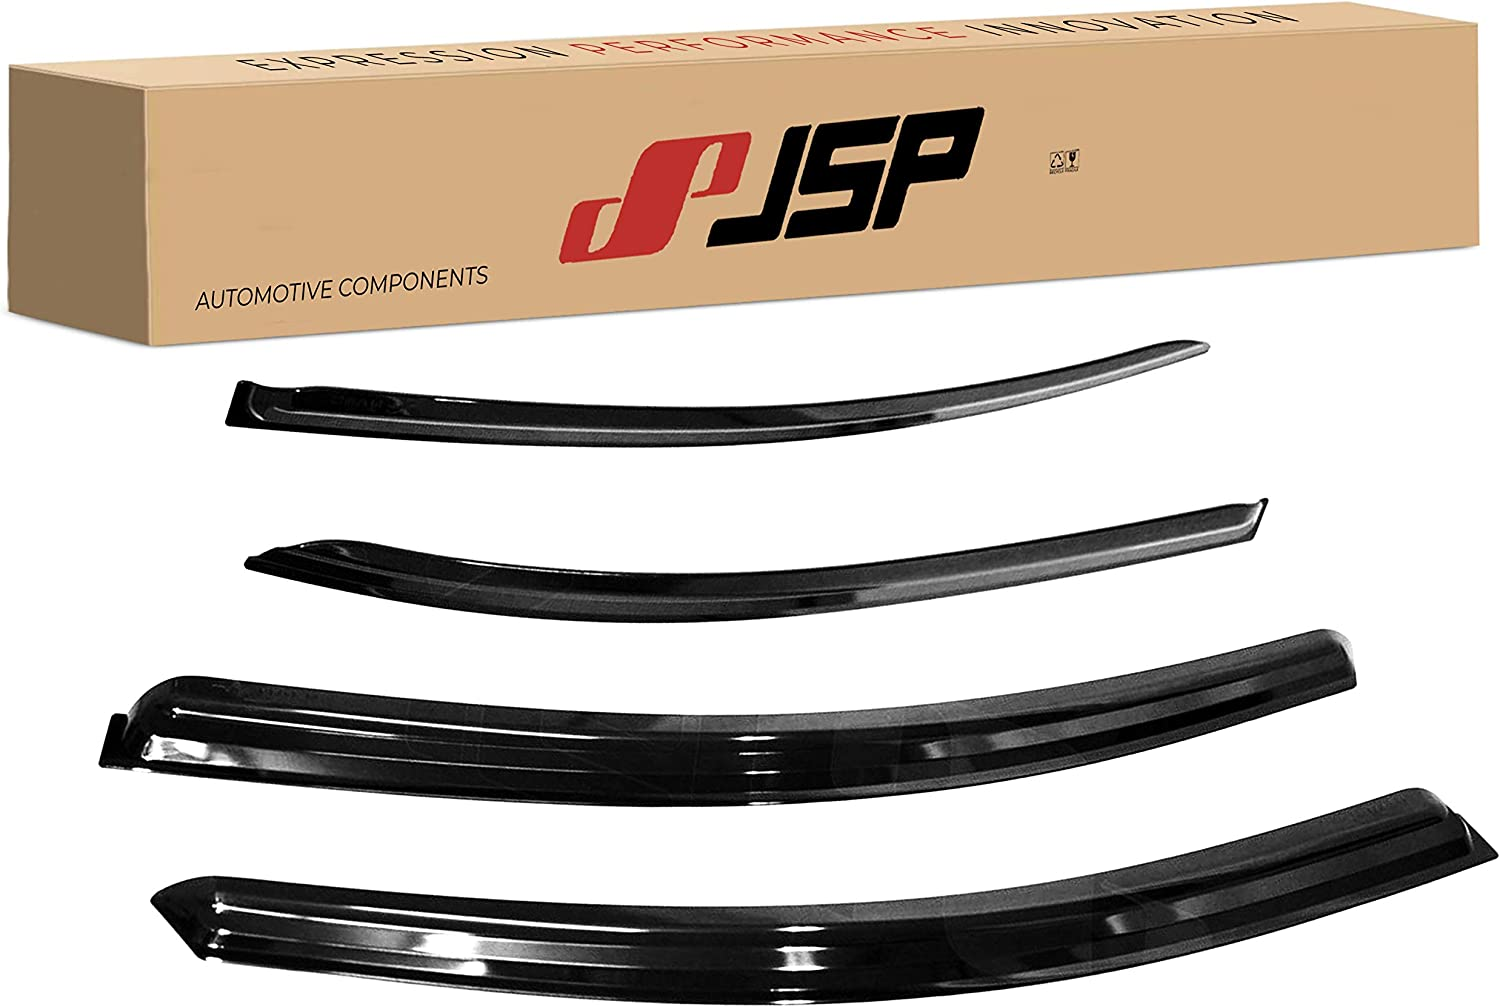 JSP Window Vent Deflector Rain Cheap 2012- Compatible Guard with Inventory cleanup selling sale Visor